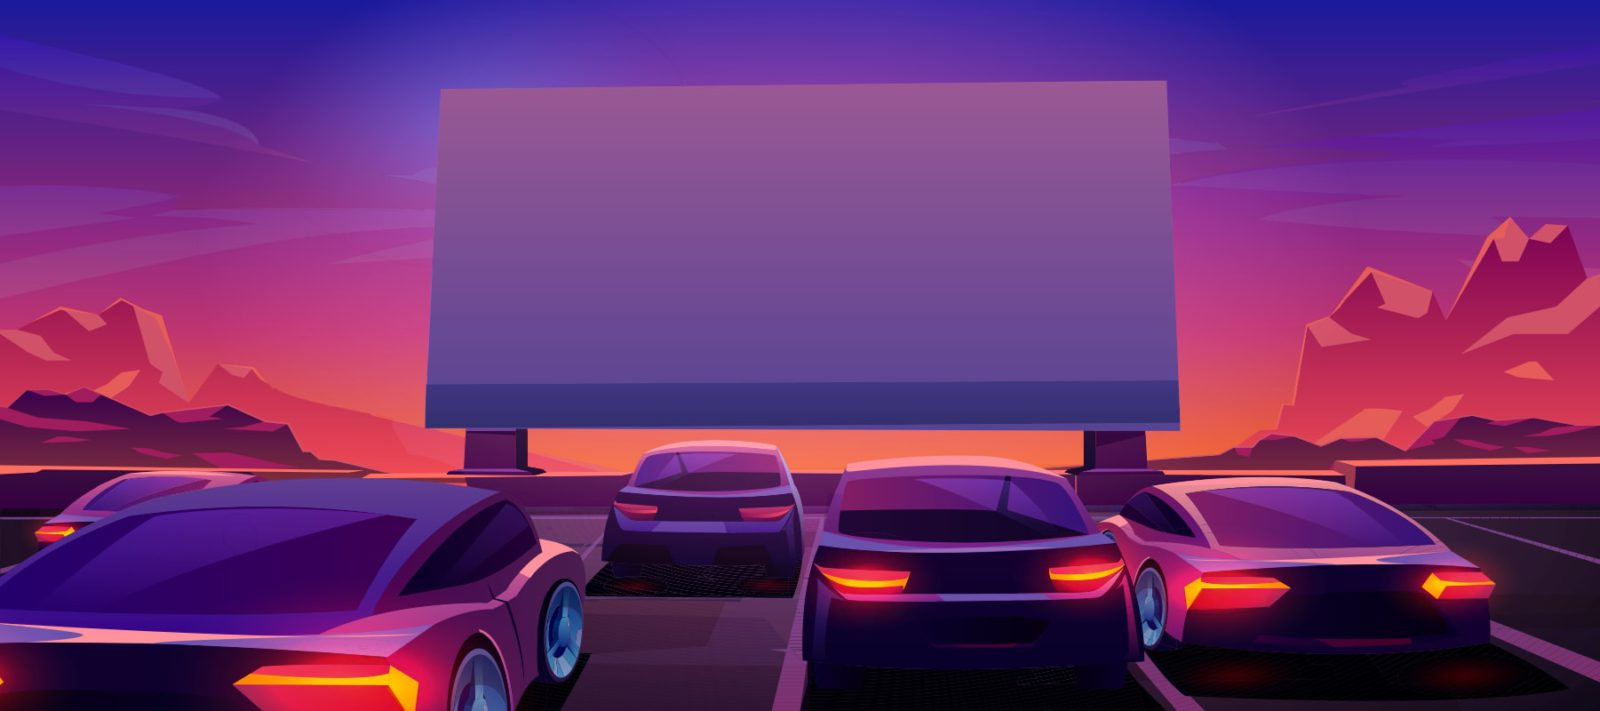 Illustration of Drive-In Theater - Sunset